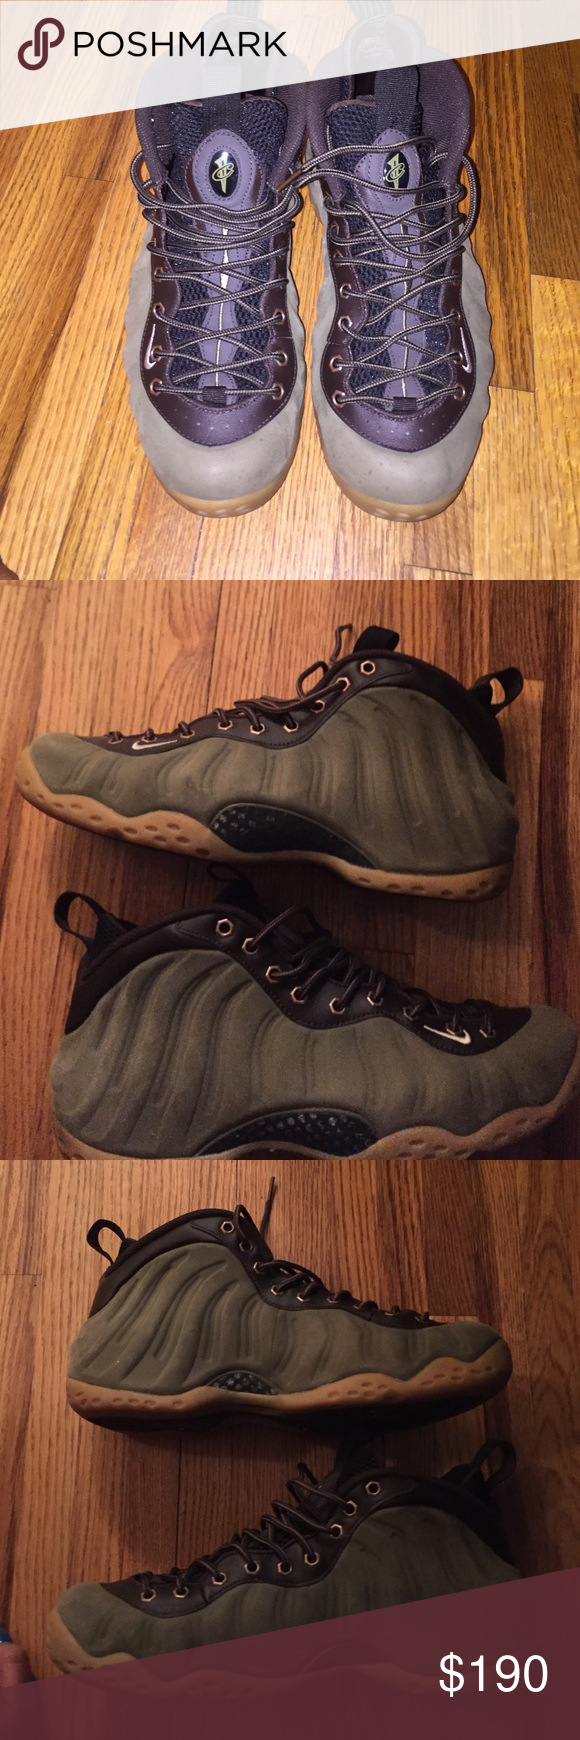 Air Foamposites Condition is 10/10. No flaws. Great for fall. Nike Shoes Sneakers